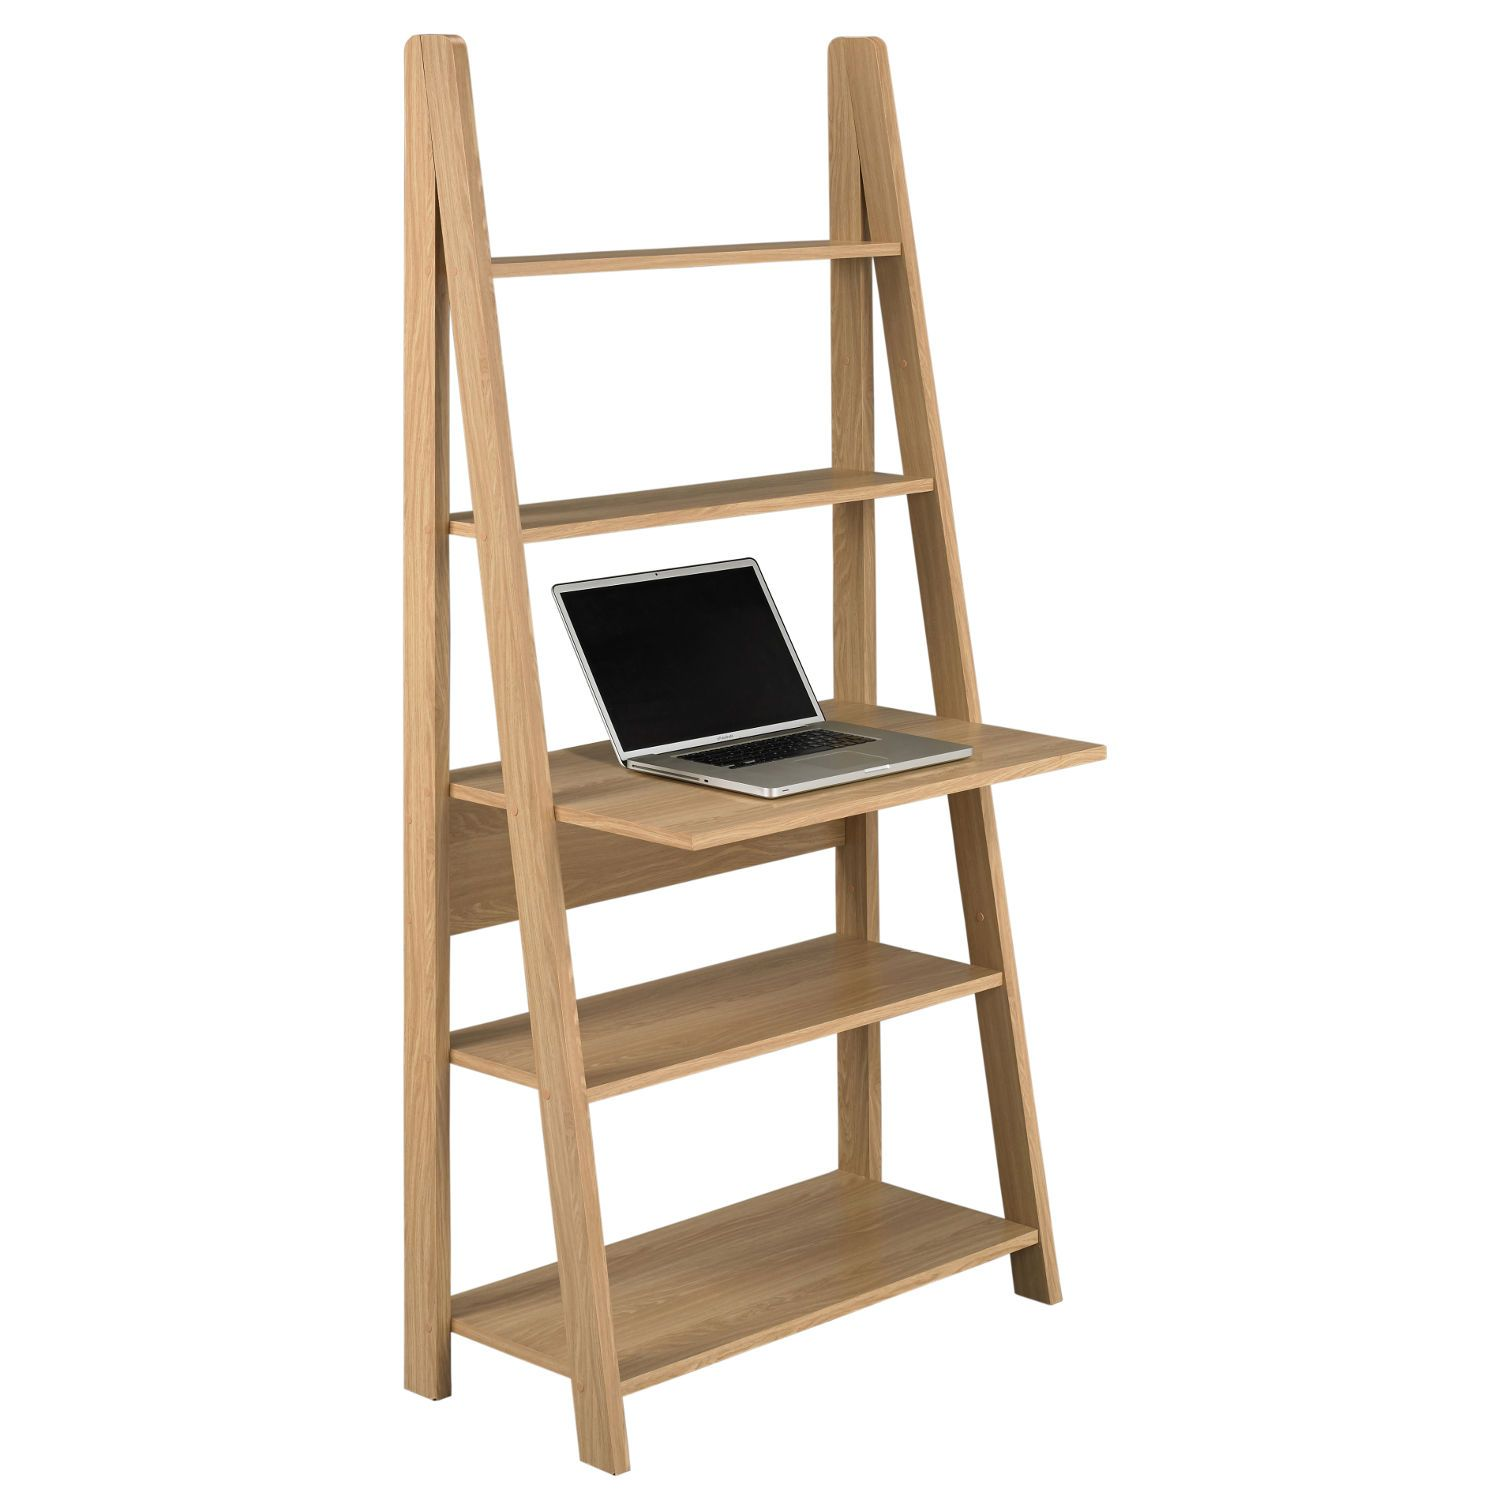 Home Furniture Delivery: Next Day Delivery Tiva Ladder Desk From